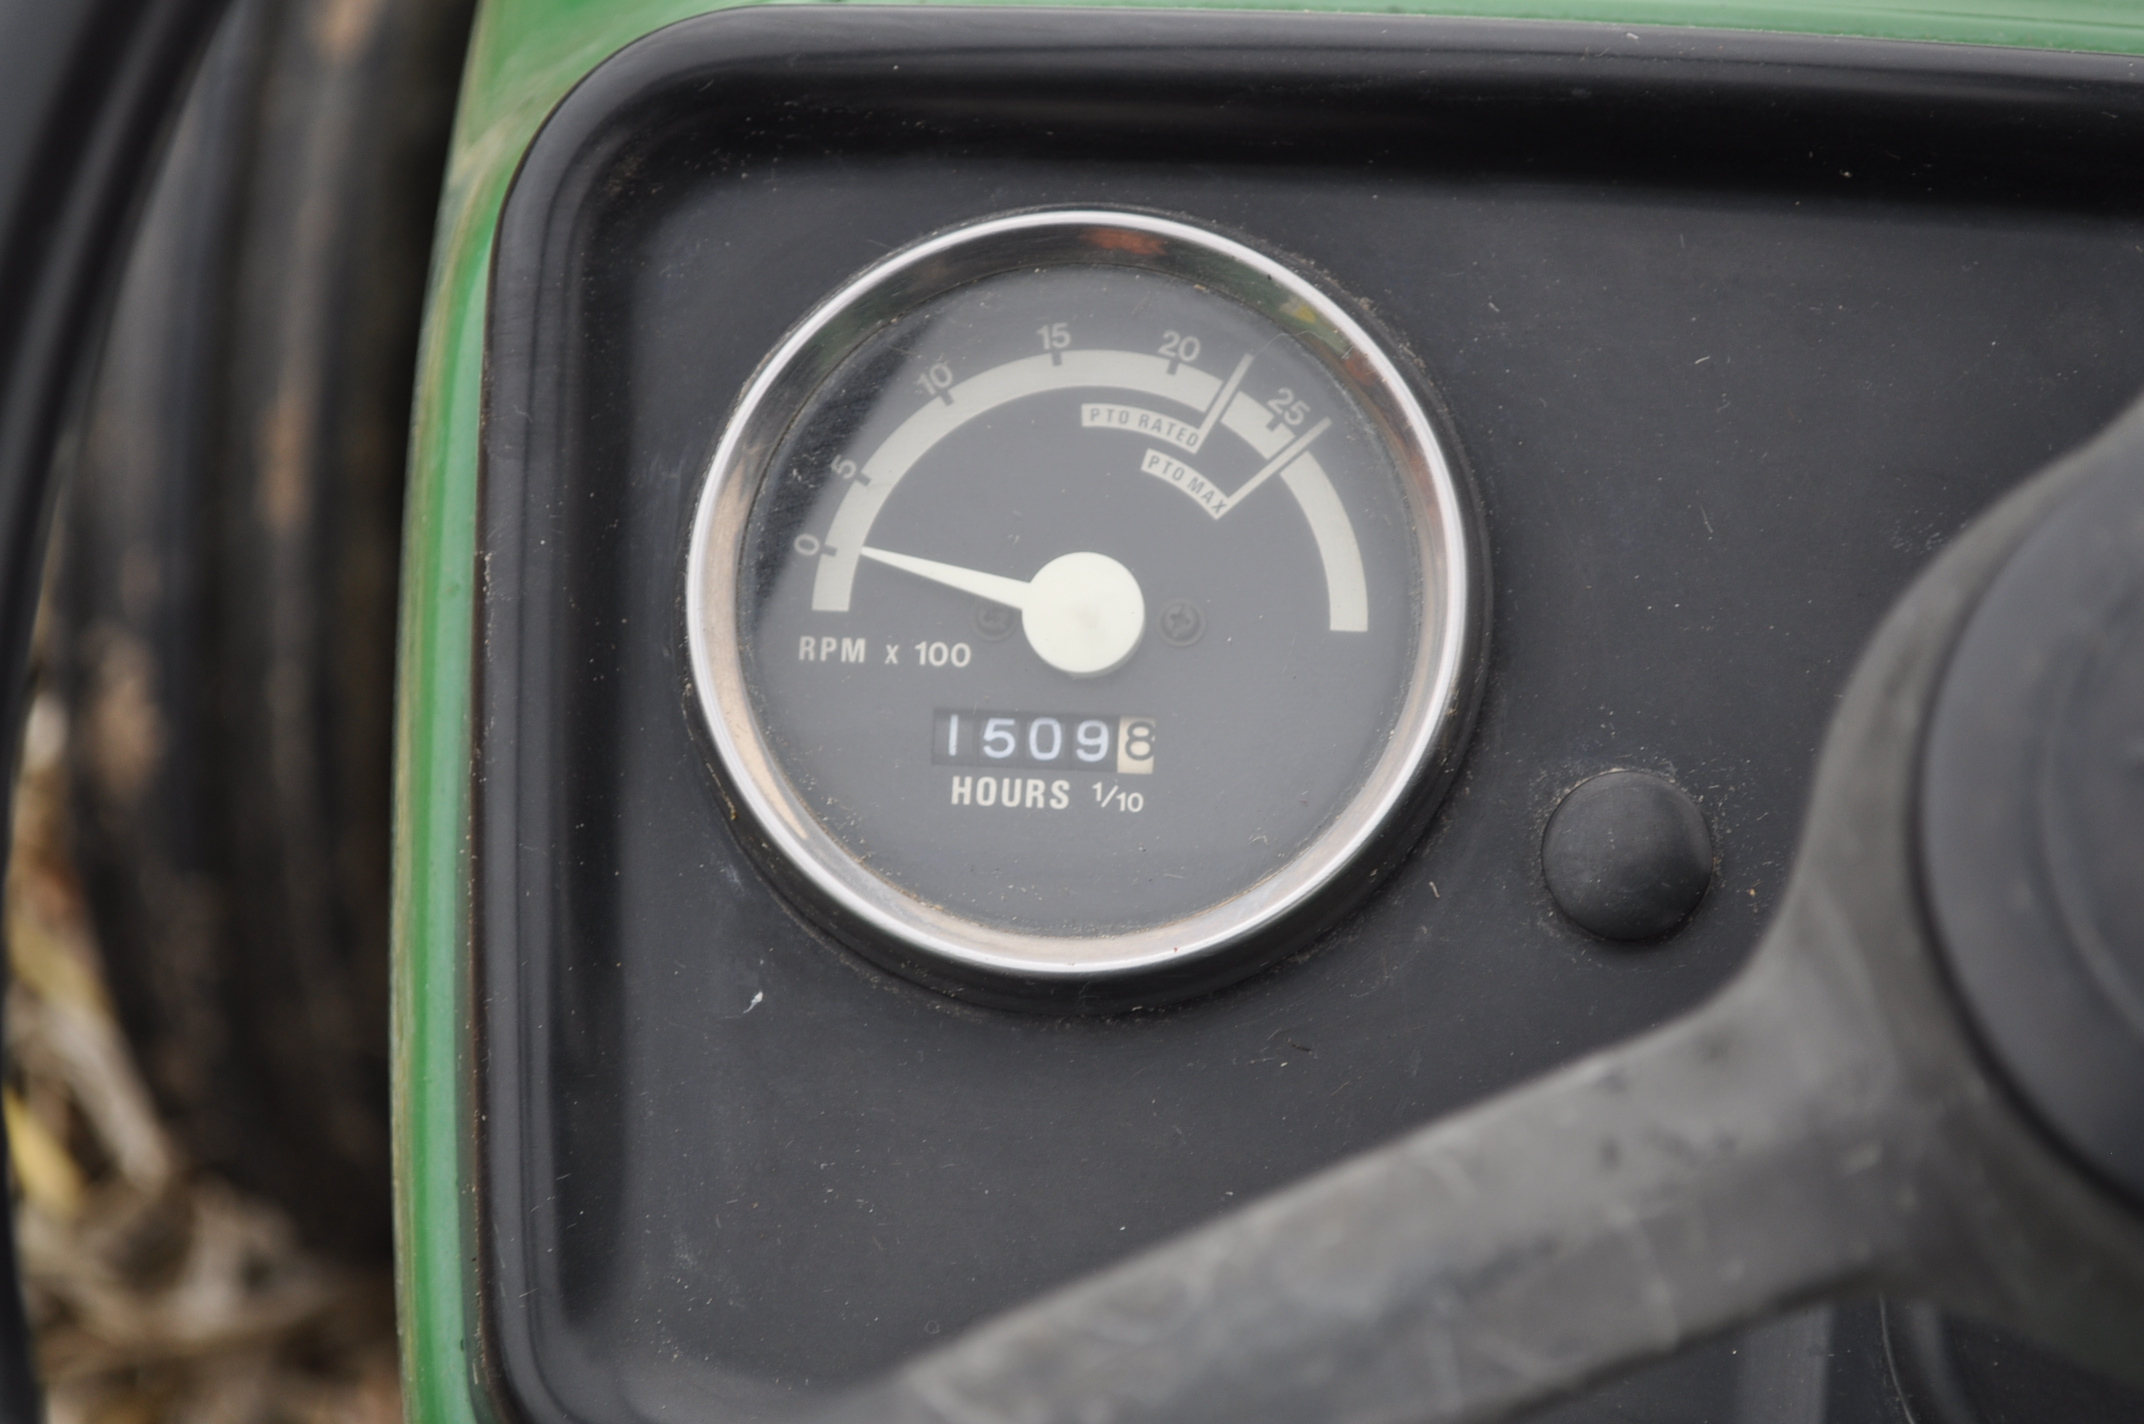 John Deere 850 utility tractor, diesel, 12.4-24 rear, 5.00-16 front, 2 hyd remotes, 3 pt, 540 pto, - Image 12 of 13